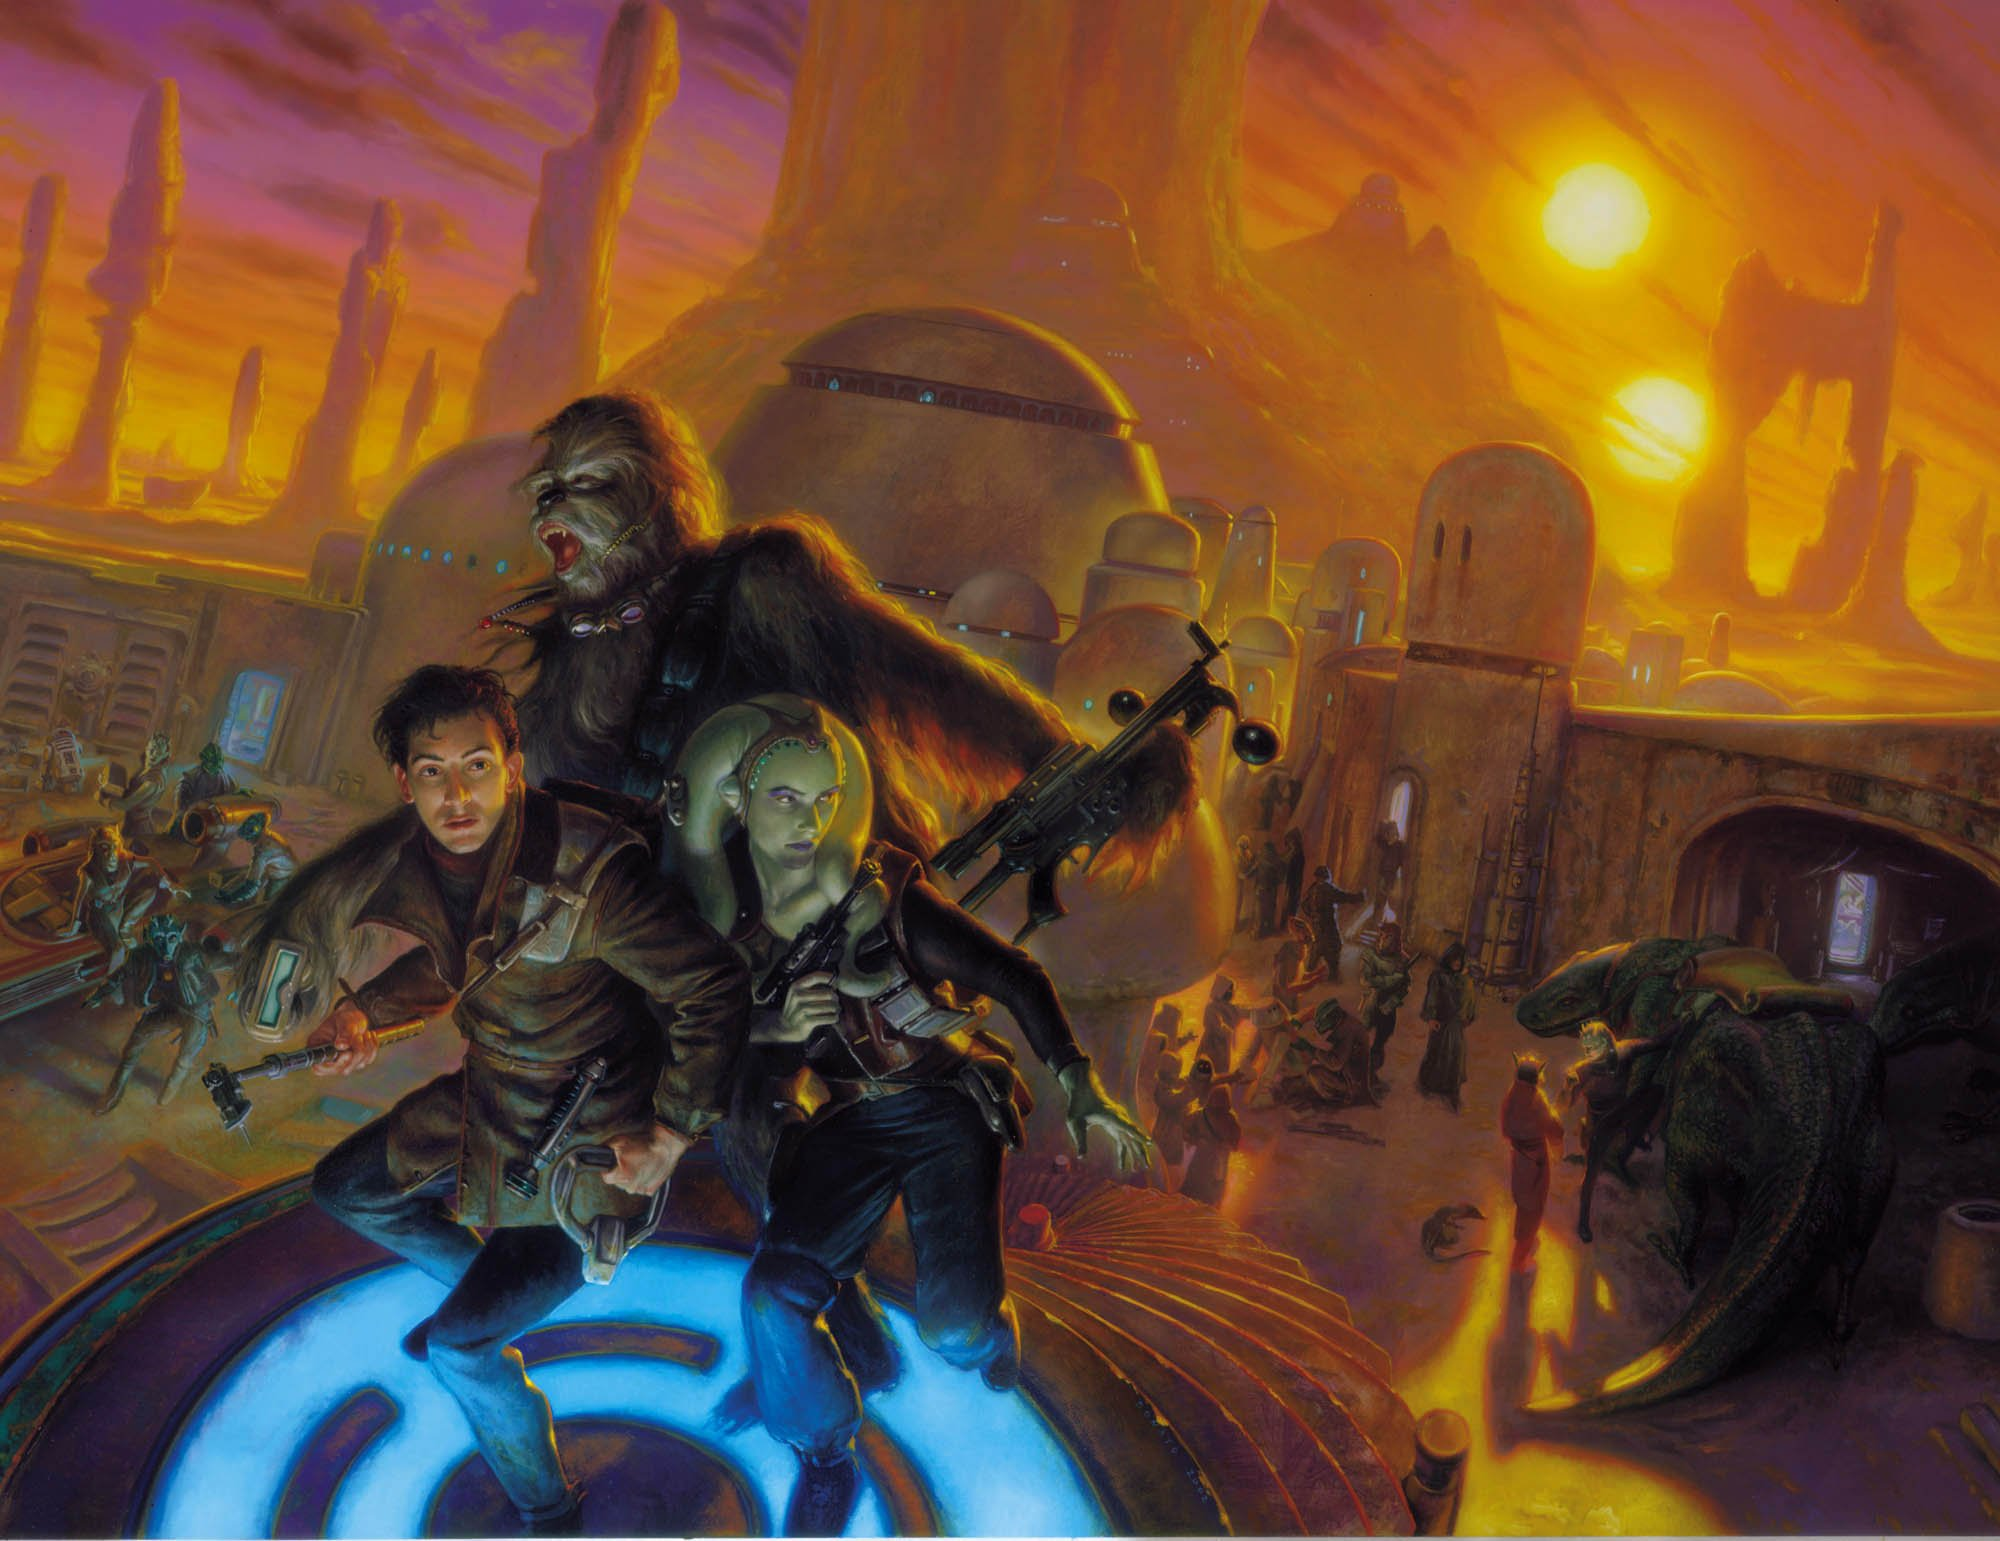 "Star Wars Galaxies 33"" x 45""  Oil on Panel 2002 Advertising illustration for the video game by Lucas Arts"